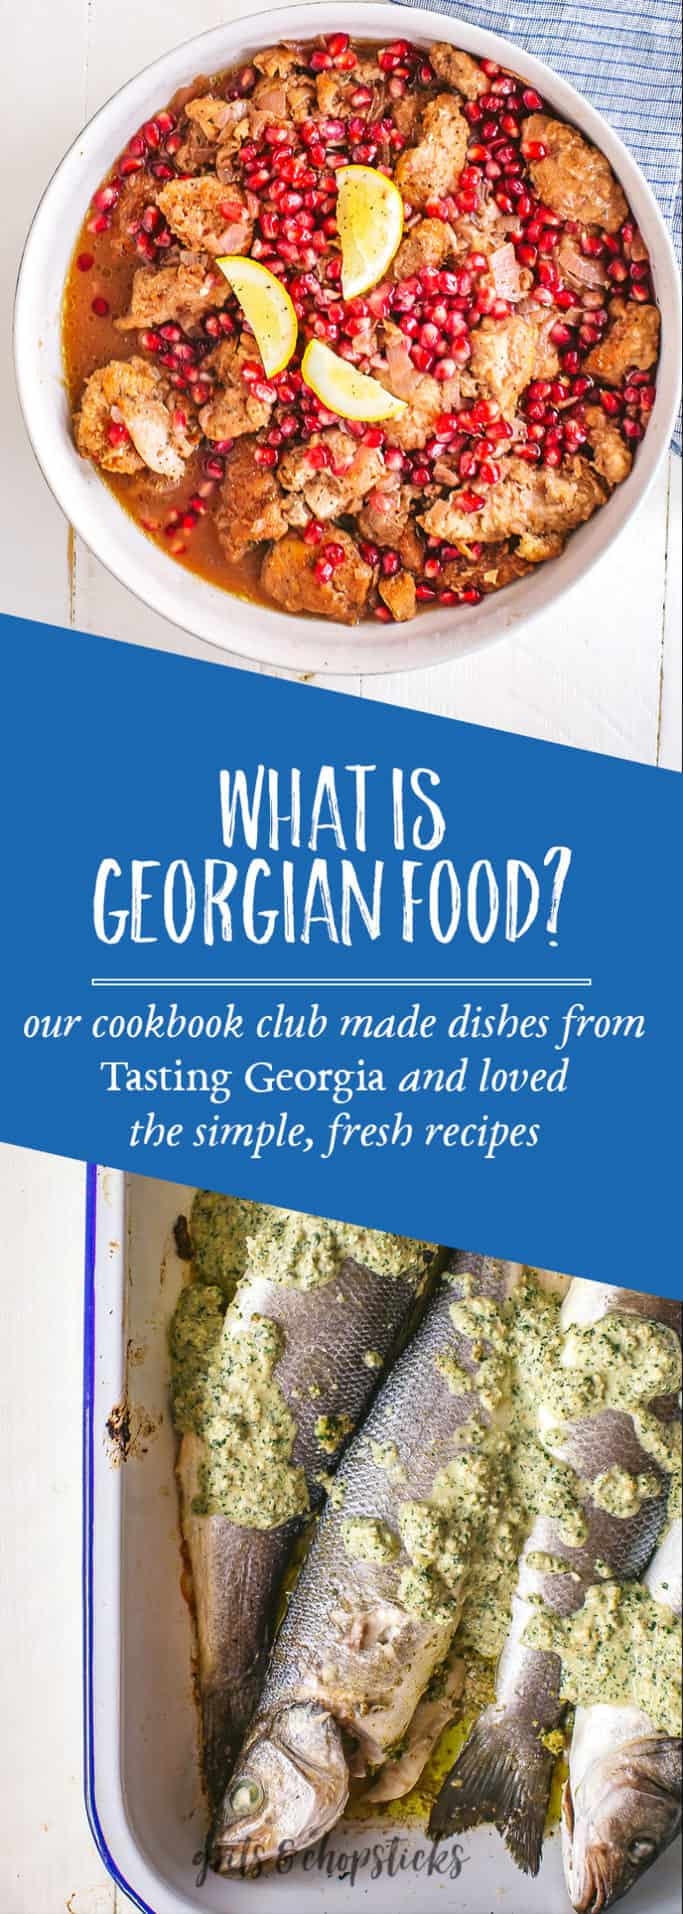 Our cookbook club met to taste recipes from Tasting Georgia, highlighting food from the Caucasus region. Click here to see more!